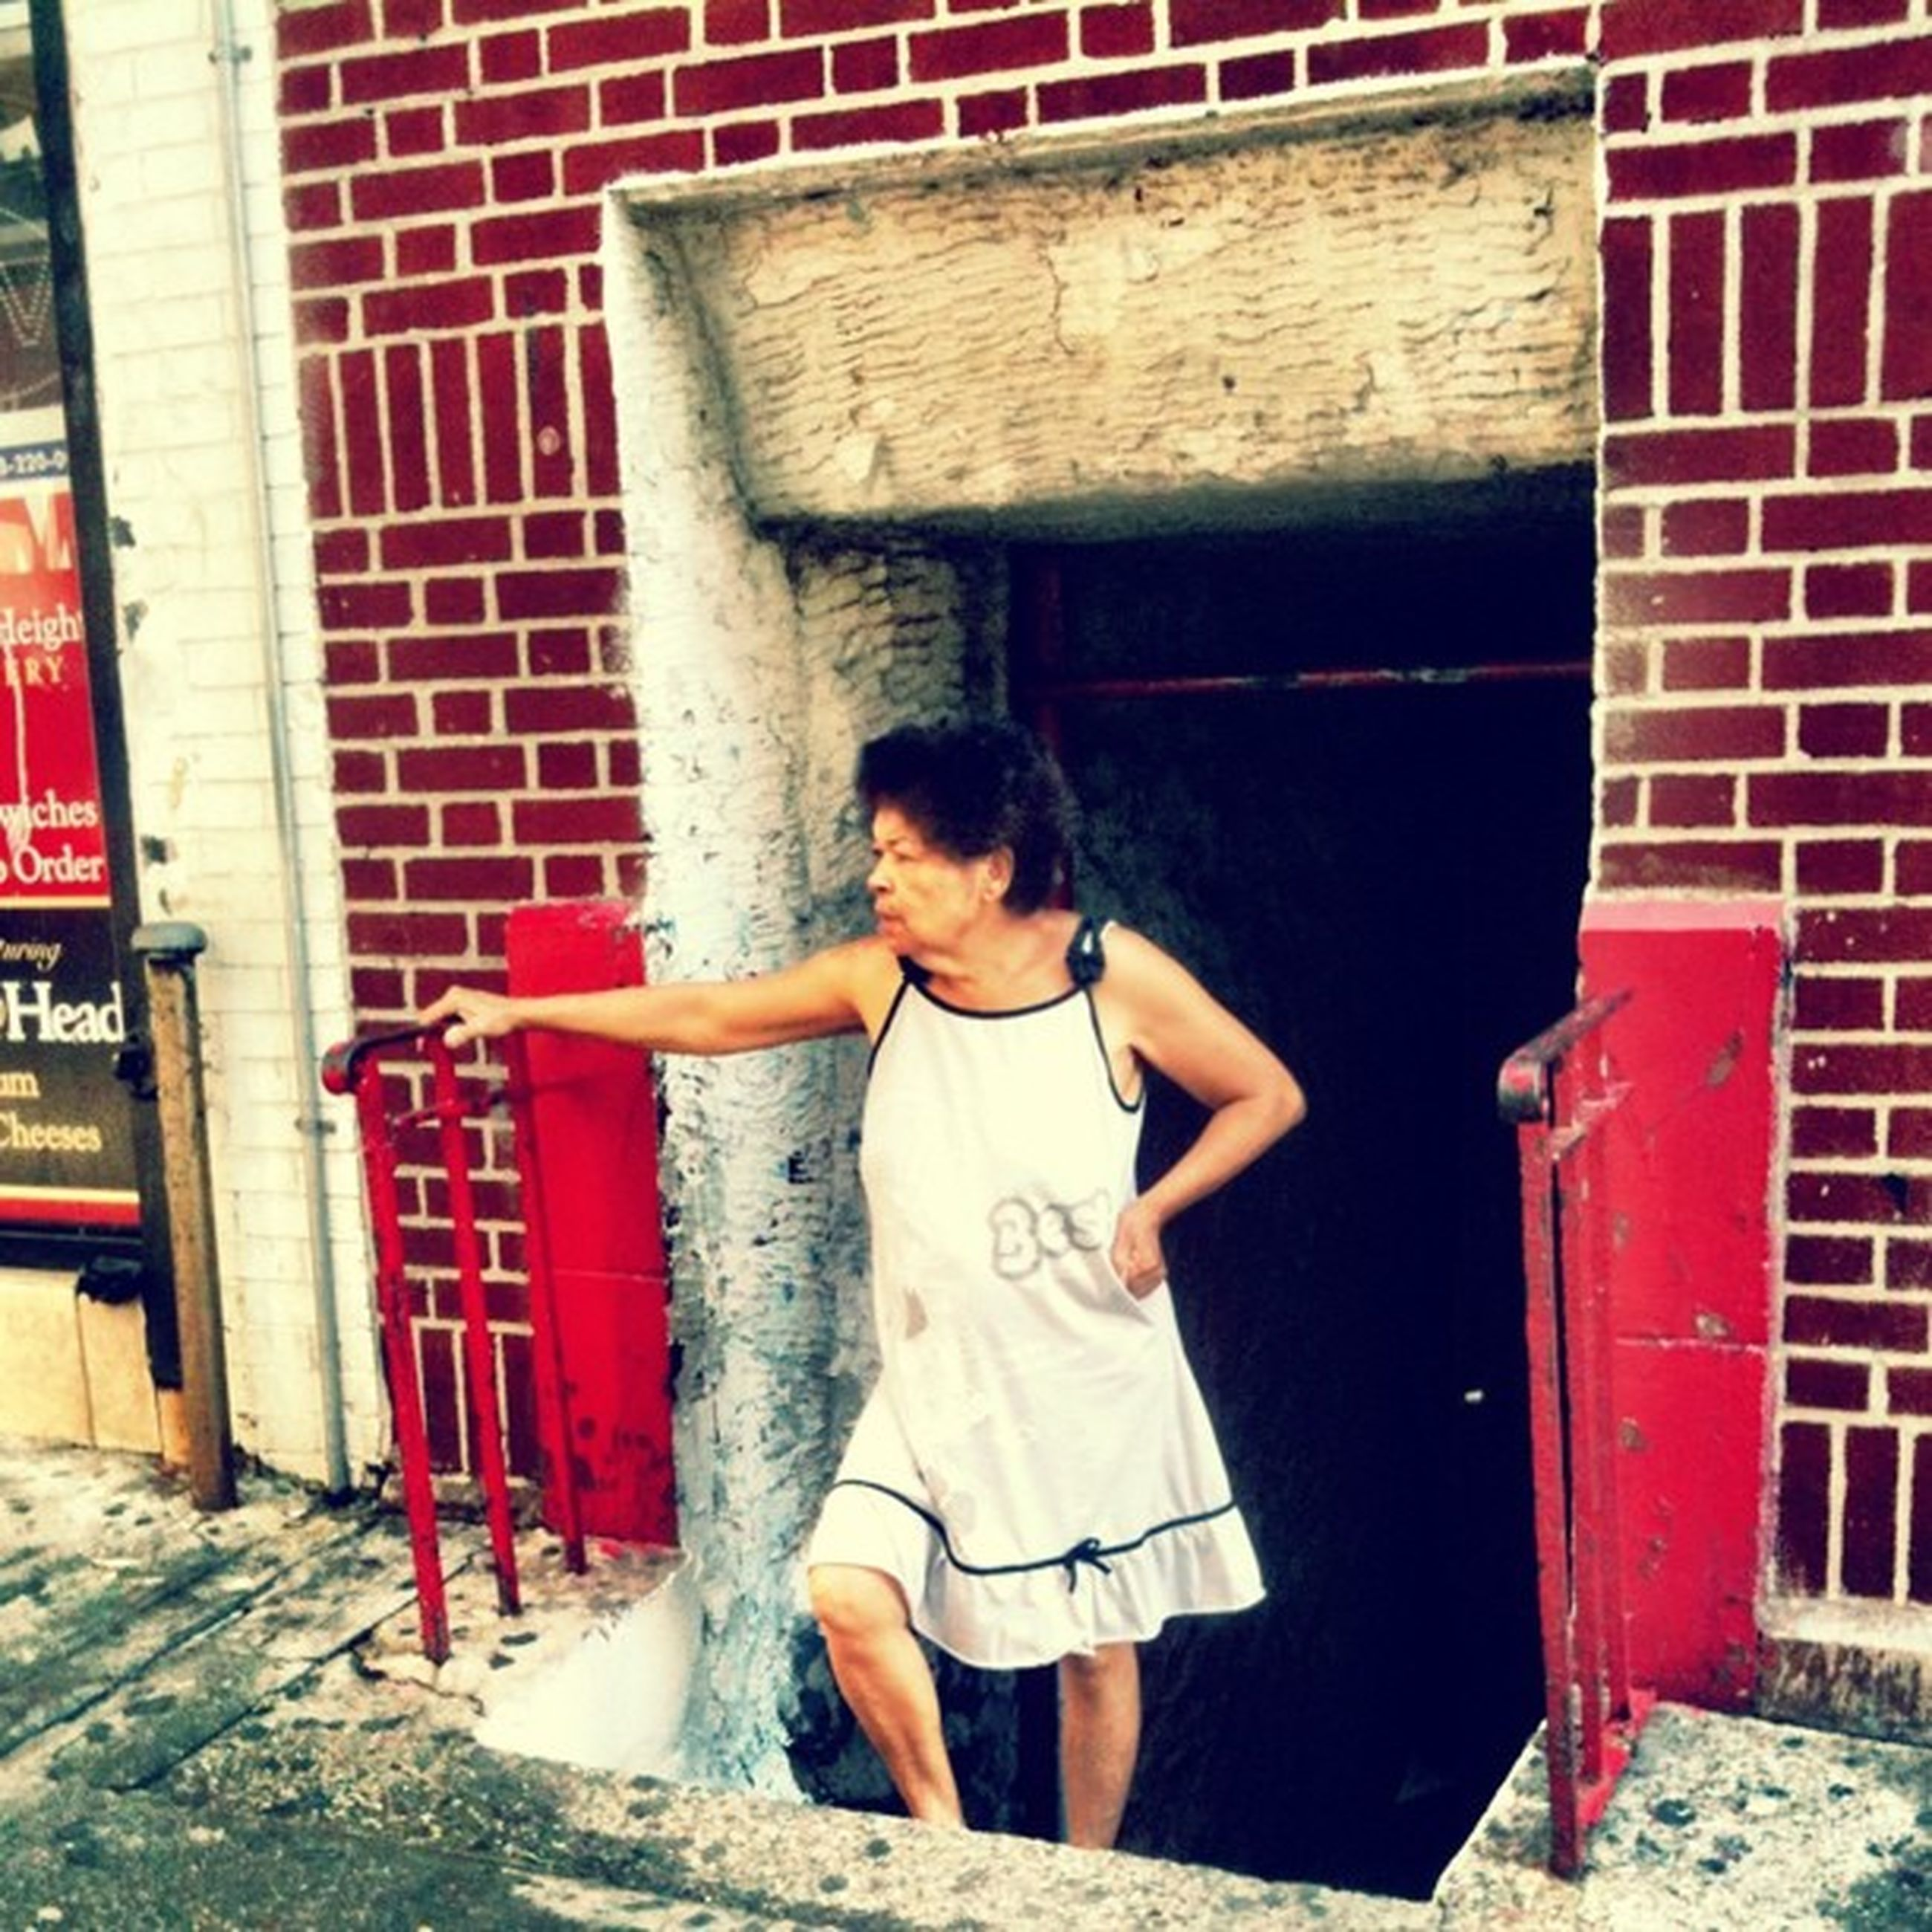 casual clothing, building exterior, lifestyles, architecture, built structure, full length, standing, leisure activity, person, three quarter length, young adult, front view, young women, red, brick wall, wall - building feature, looking at camera